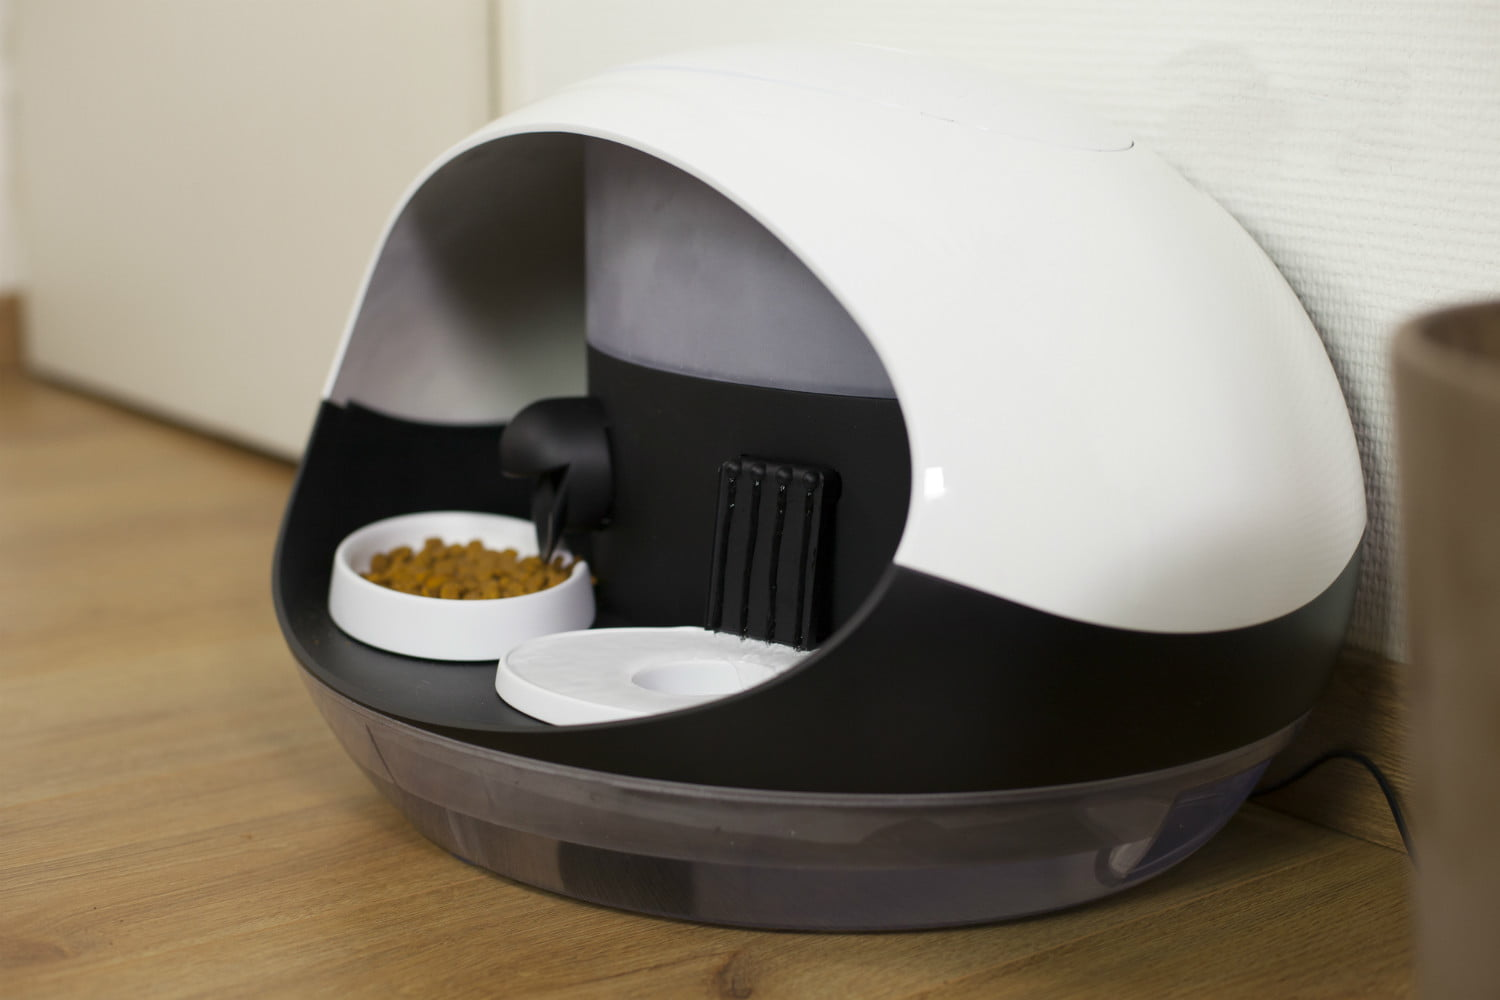 catspad is a smart food and water dispenser for cats cat feeder 4